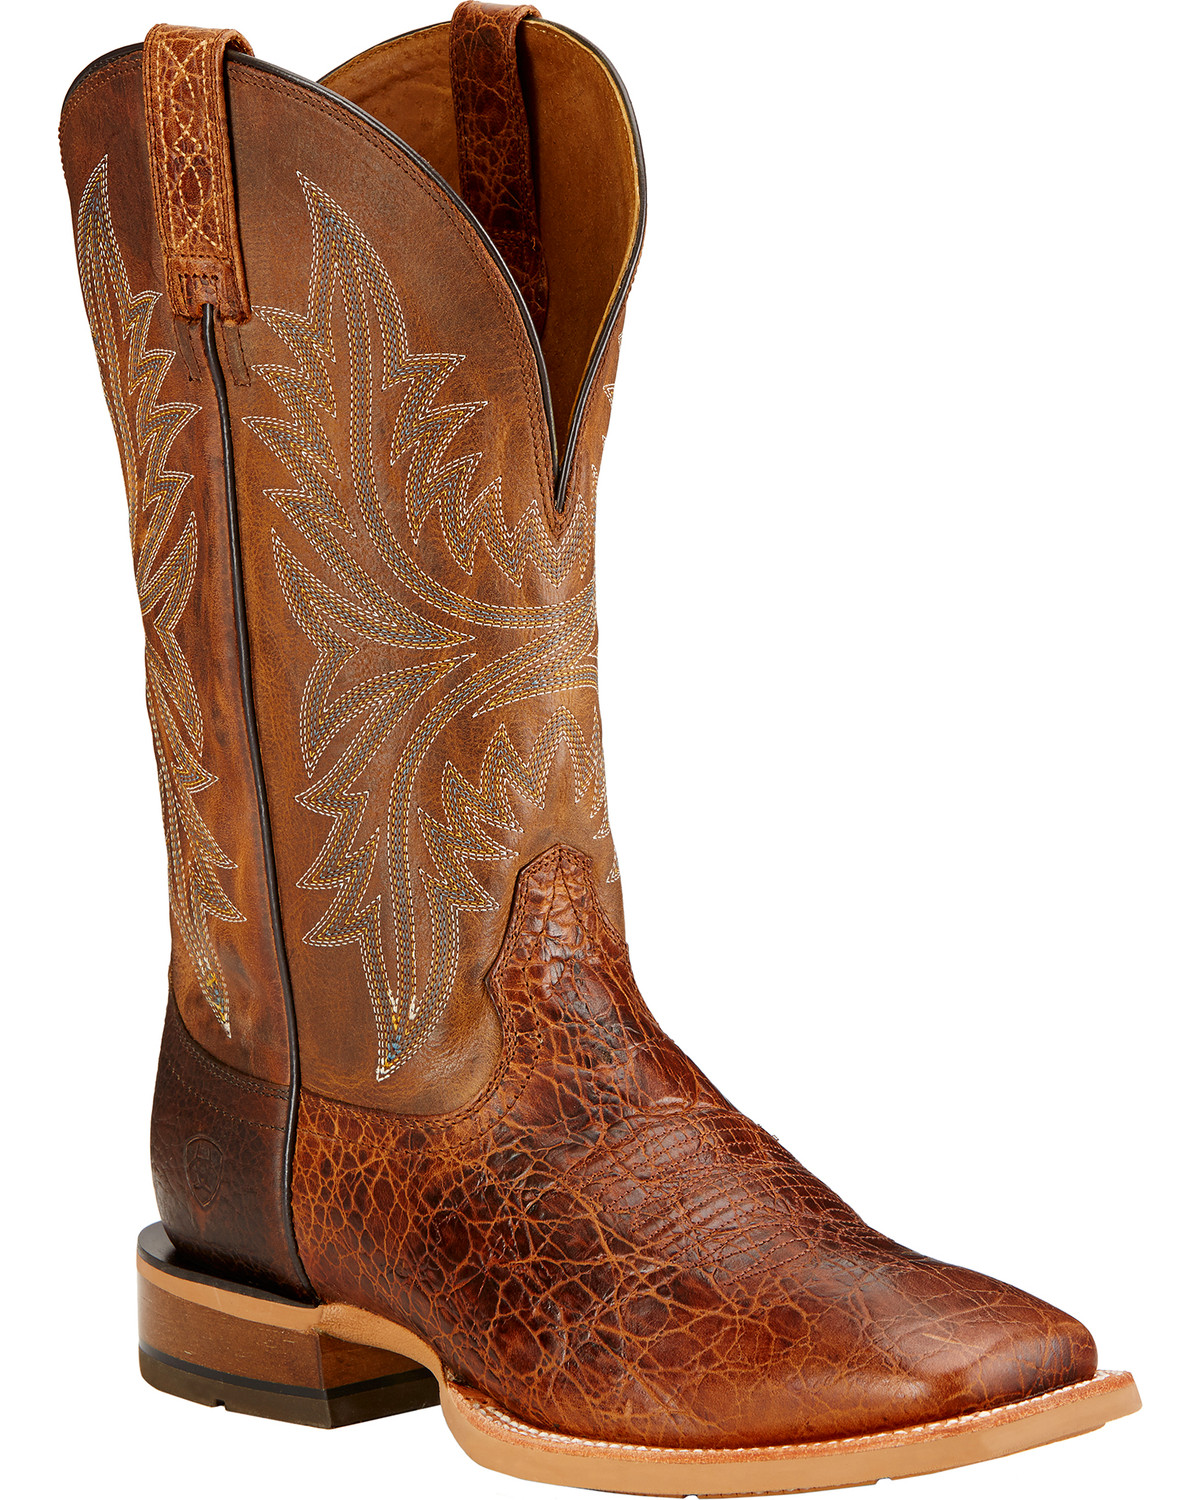 544054fb073 Ariat Men's Cowhand Western Boots